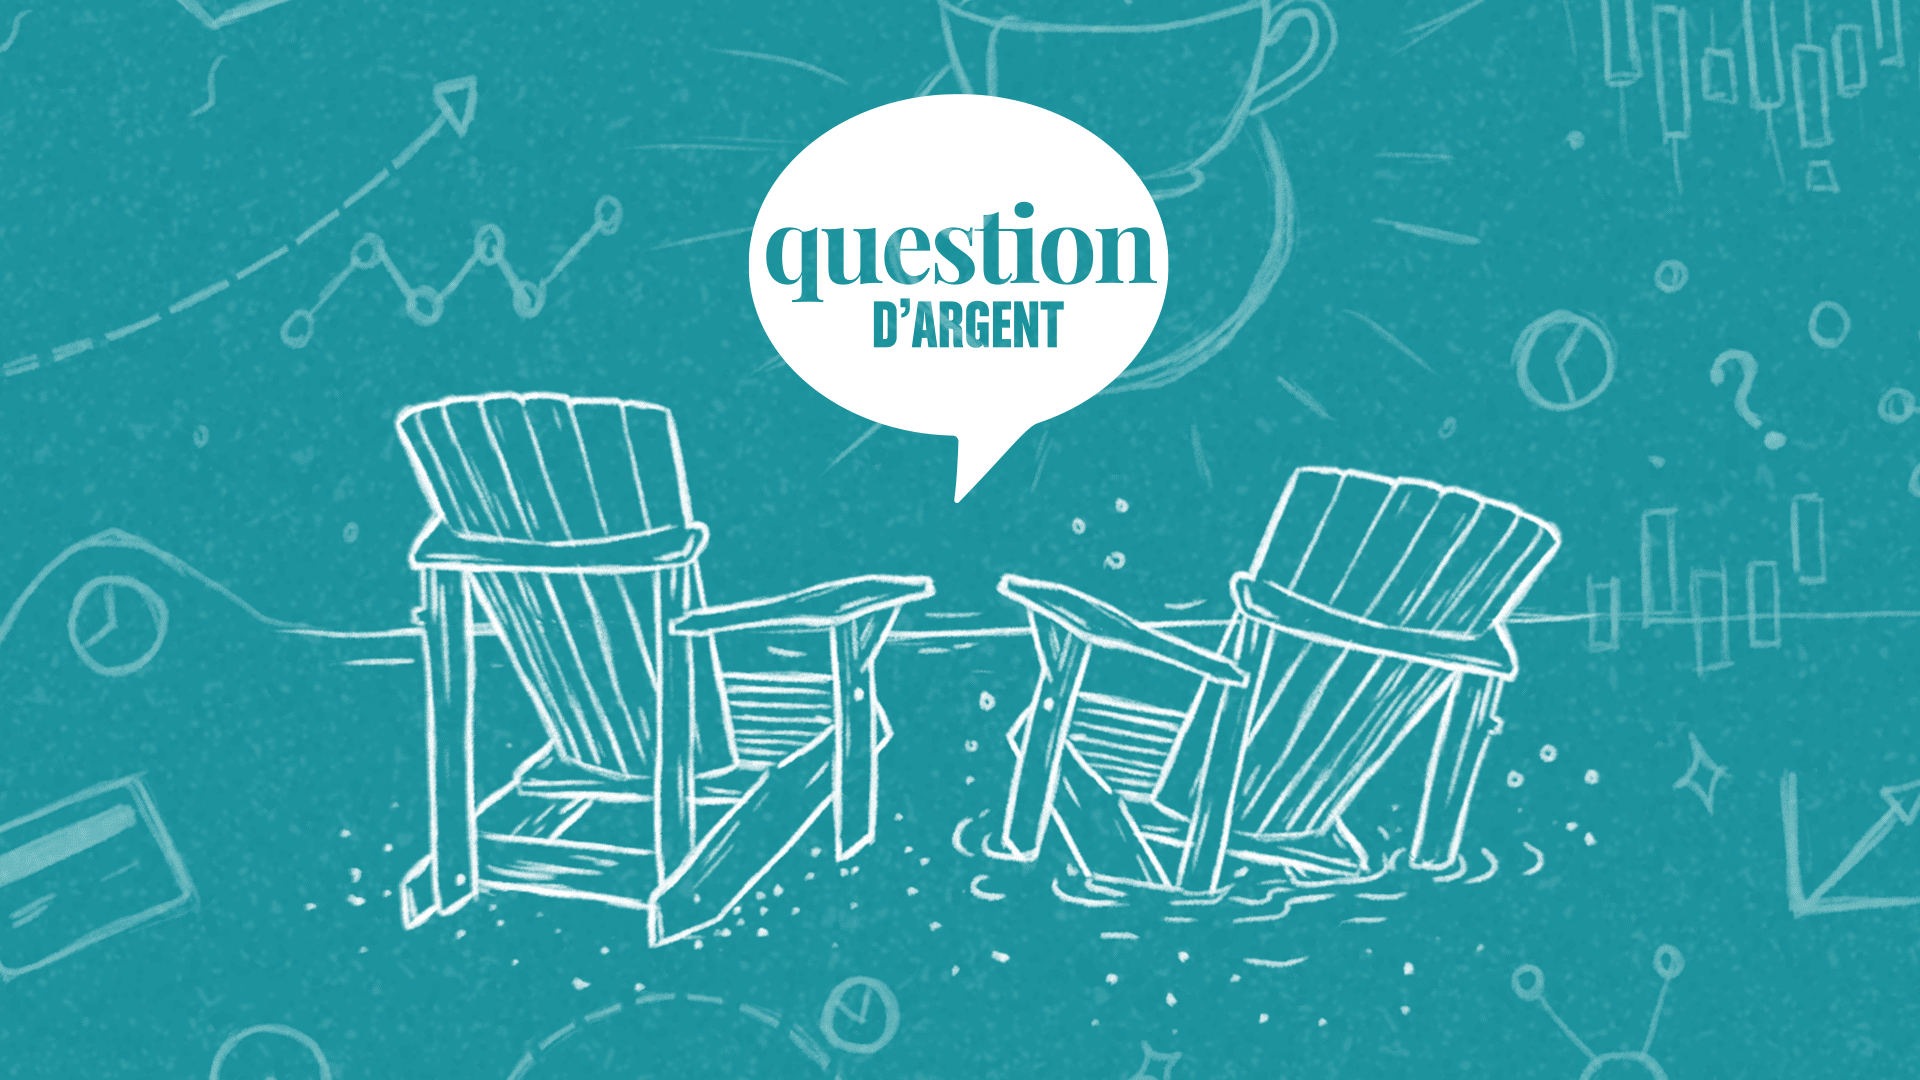 Two lounge chairs with question d'argent print